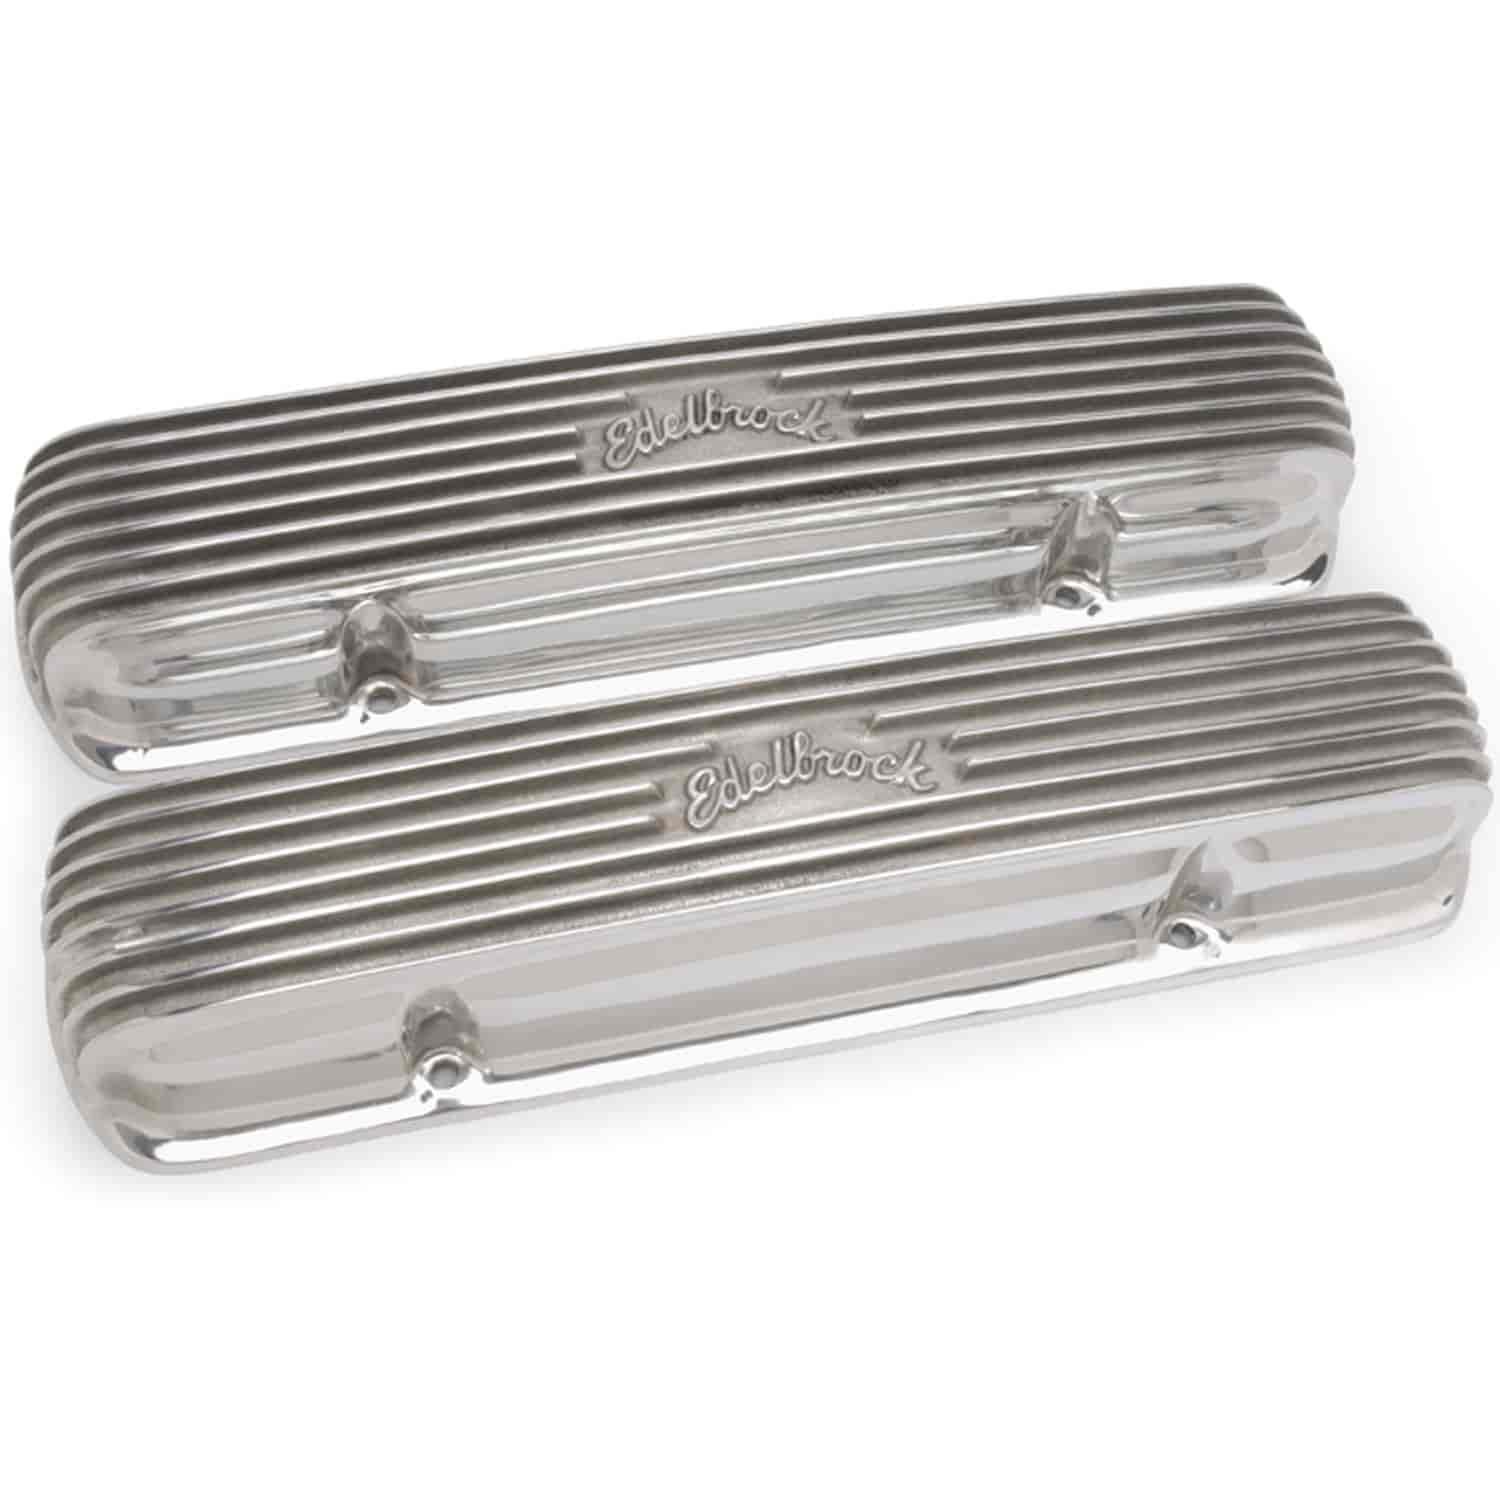 Edelbrock 4130 - Edelbrock Classic Series Valve Covers & Air Cleaners